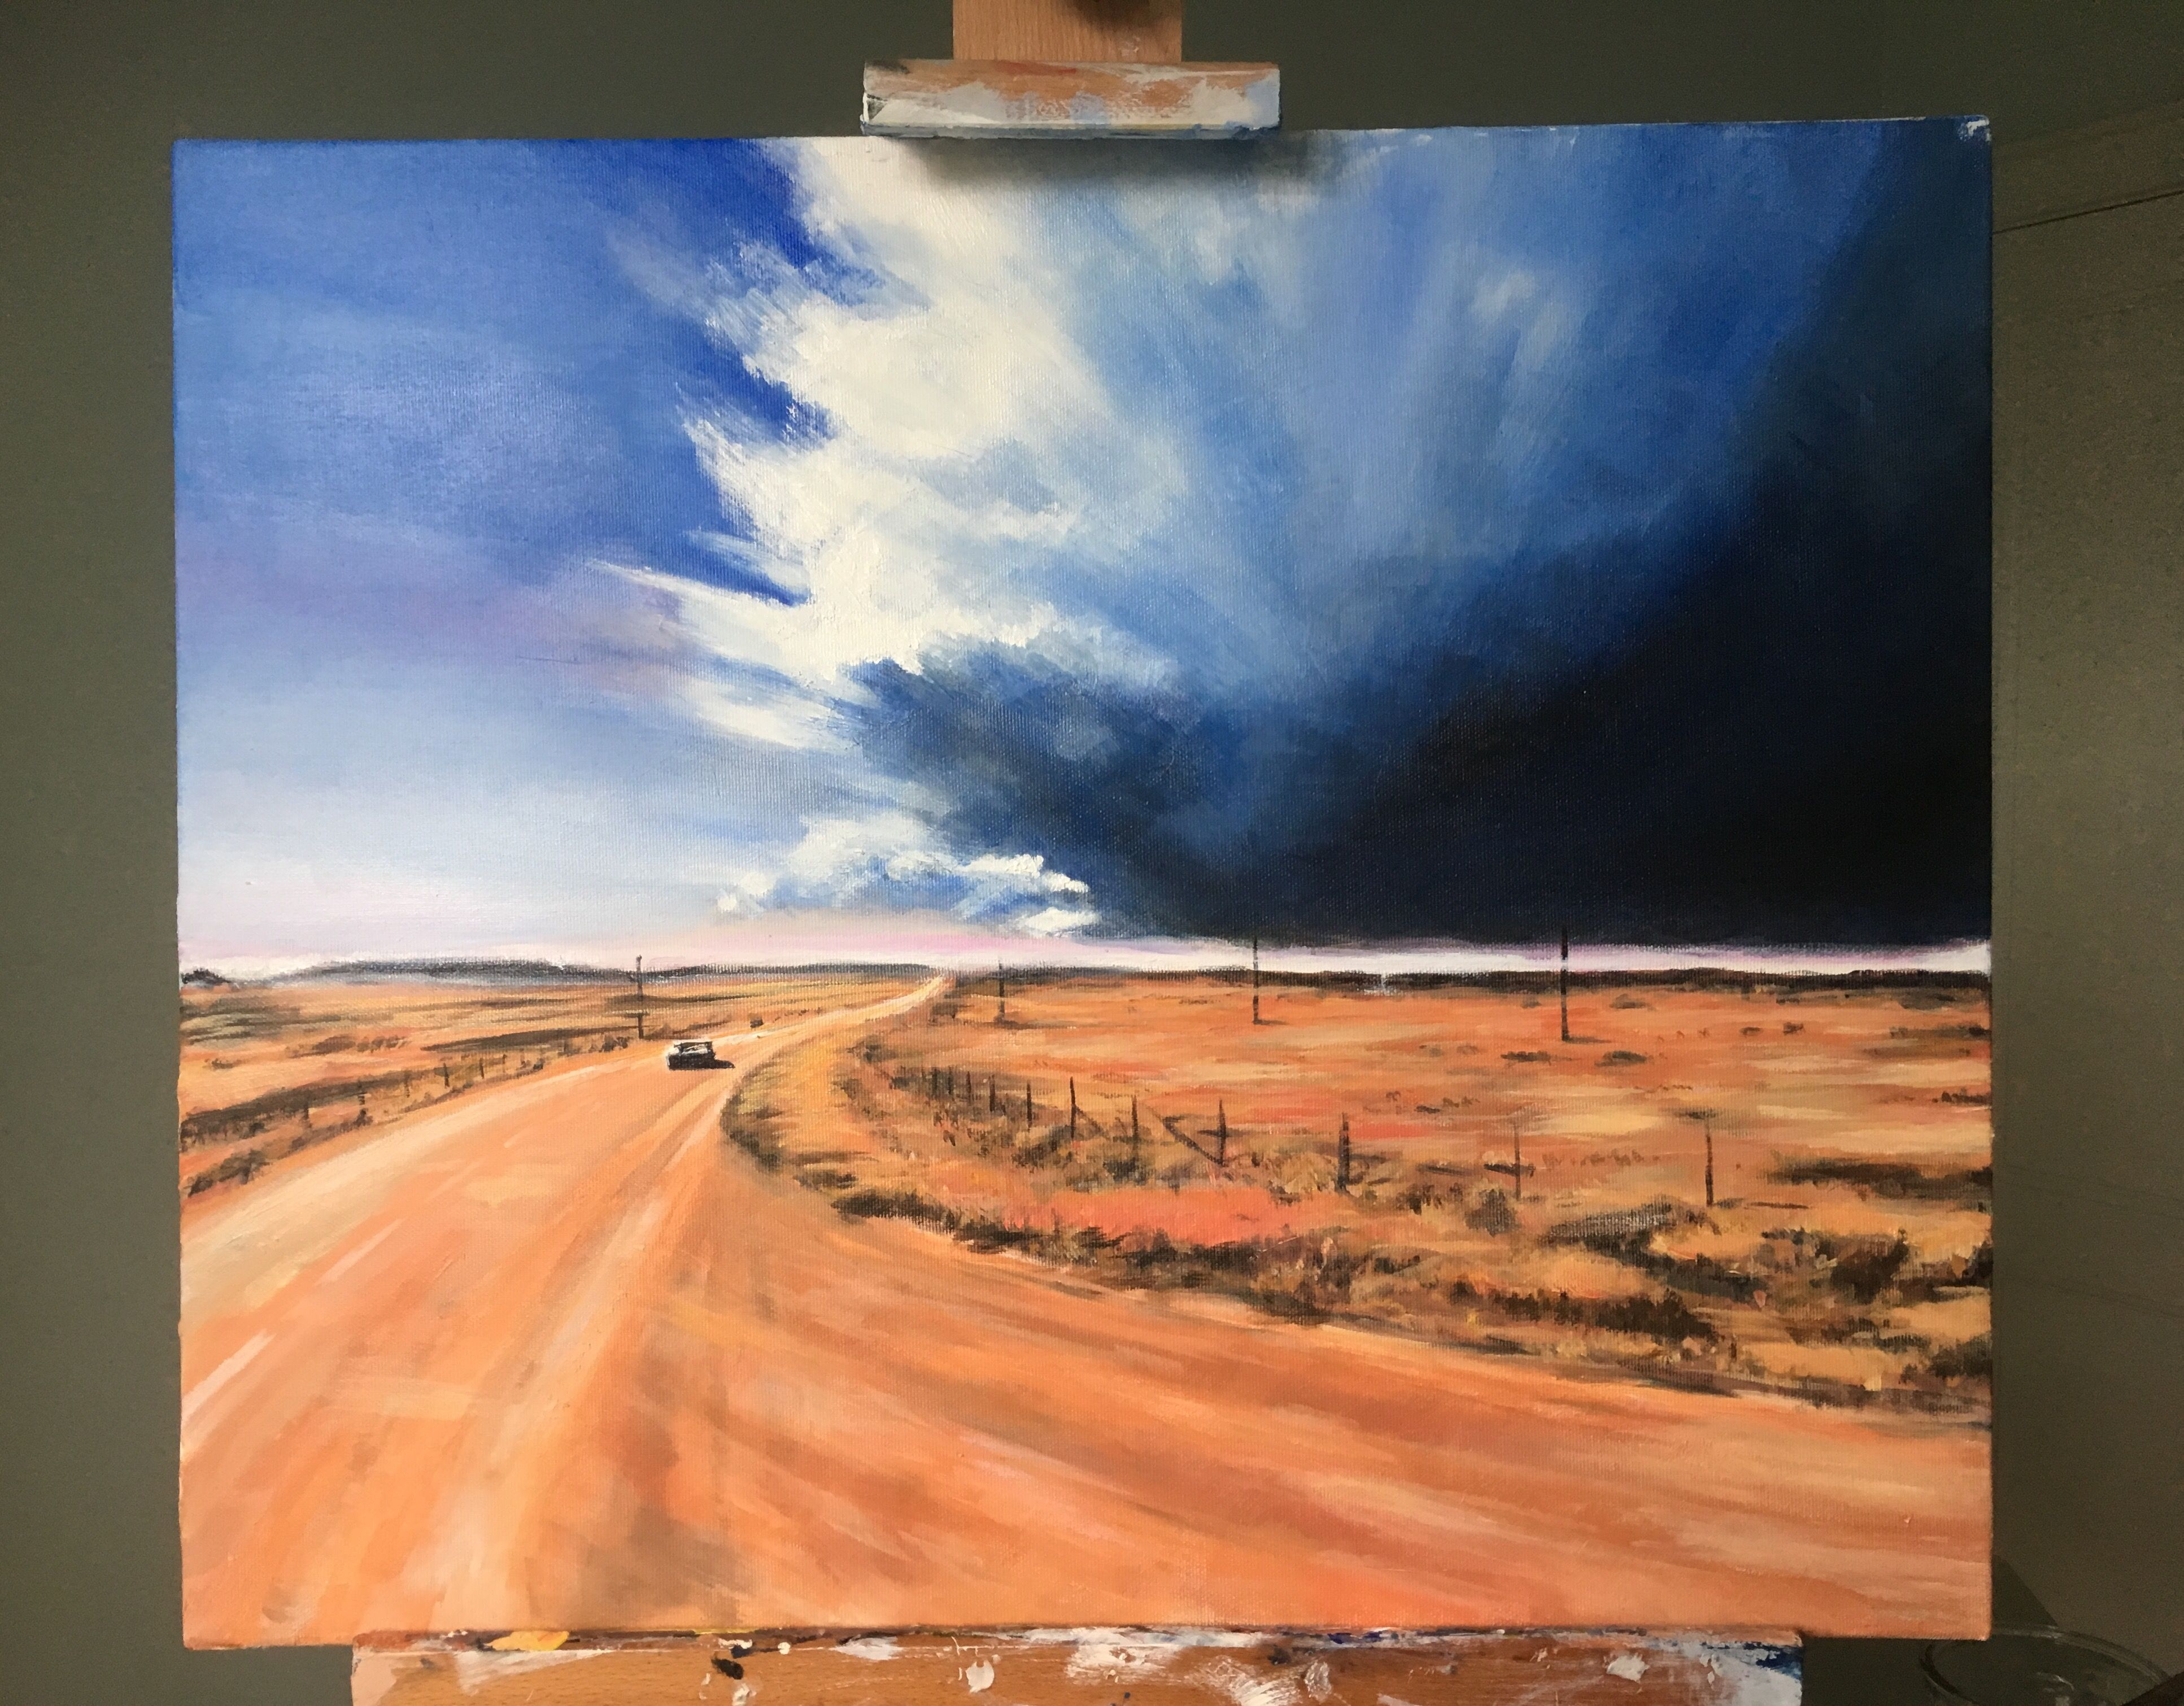 """Heartland Visions -The Springsteen Art Project by Jonas Linell: I've finished painting """"The Promised Land"""" (Oil on canvas, 60 x 50 cm)  Price: 10000 Dkr / €1400 / £1200 / $1500. Signed print: 500 Dkr / € 80 / £ 70 / $ 90  Inspired by a beautiful scene in Terrence Malick's 1973 film Badlands, which in turn is based on the same events as Springsteen's title song from the Nebraska album  Well there's a dark cloud rising from the desert floor I packed my bags and I'm heading straight into th"""